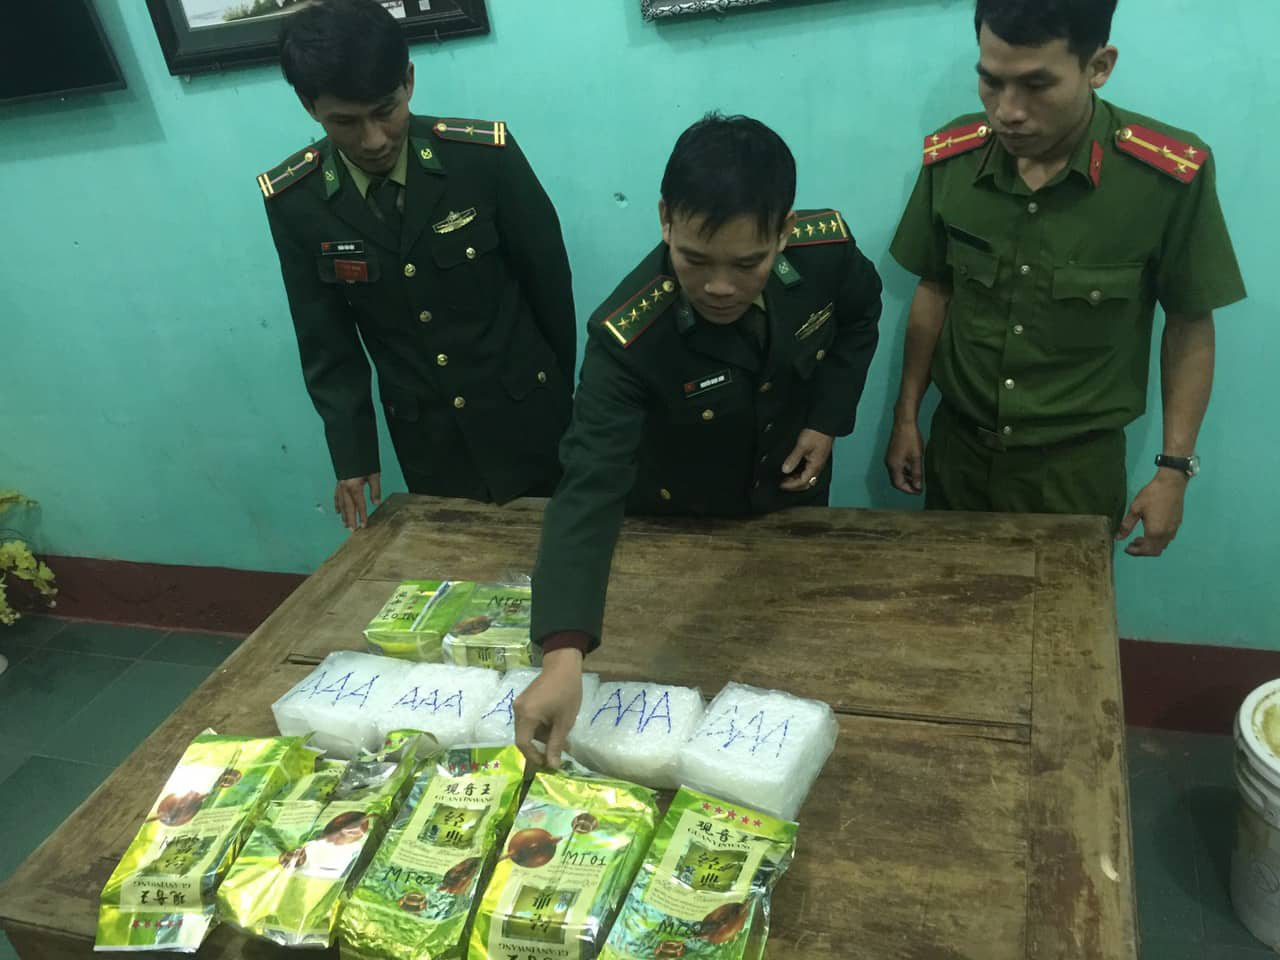 Suspected narcotics wash up on Vietnam beaches